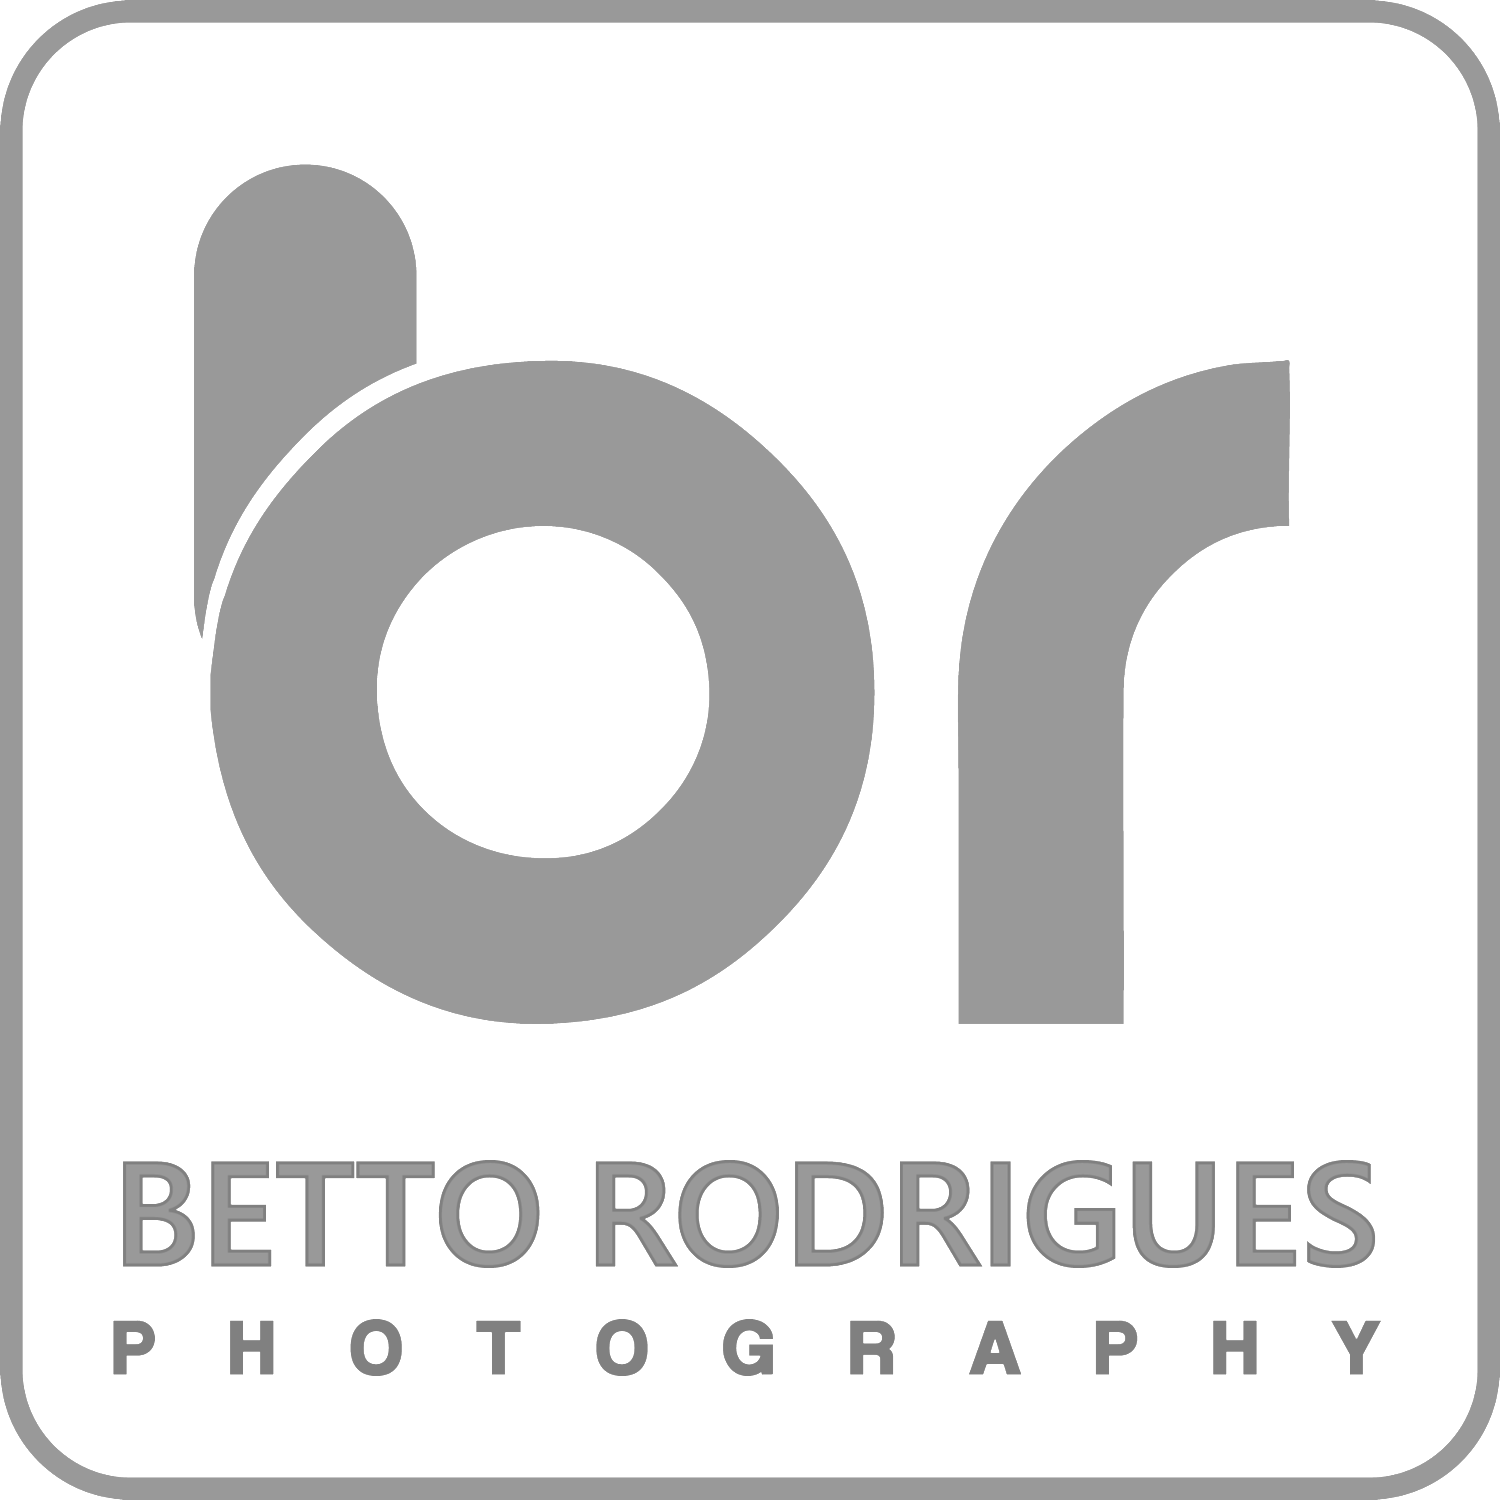 Betto Rodrigues Photography